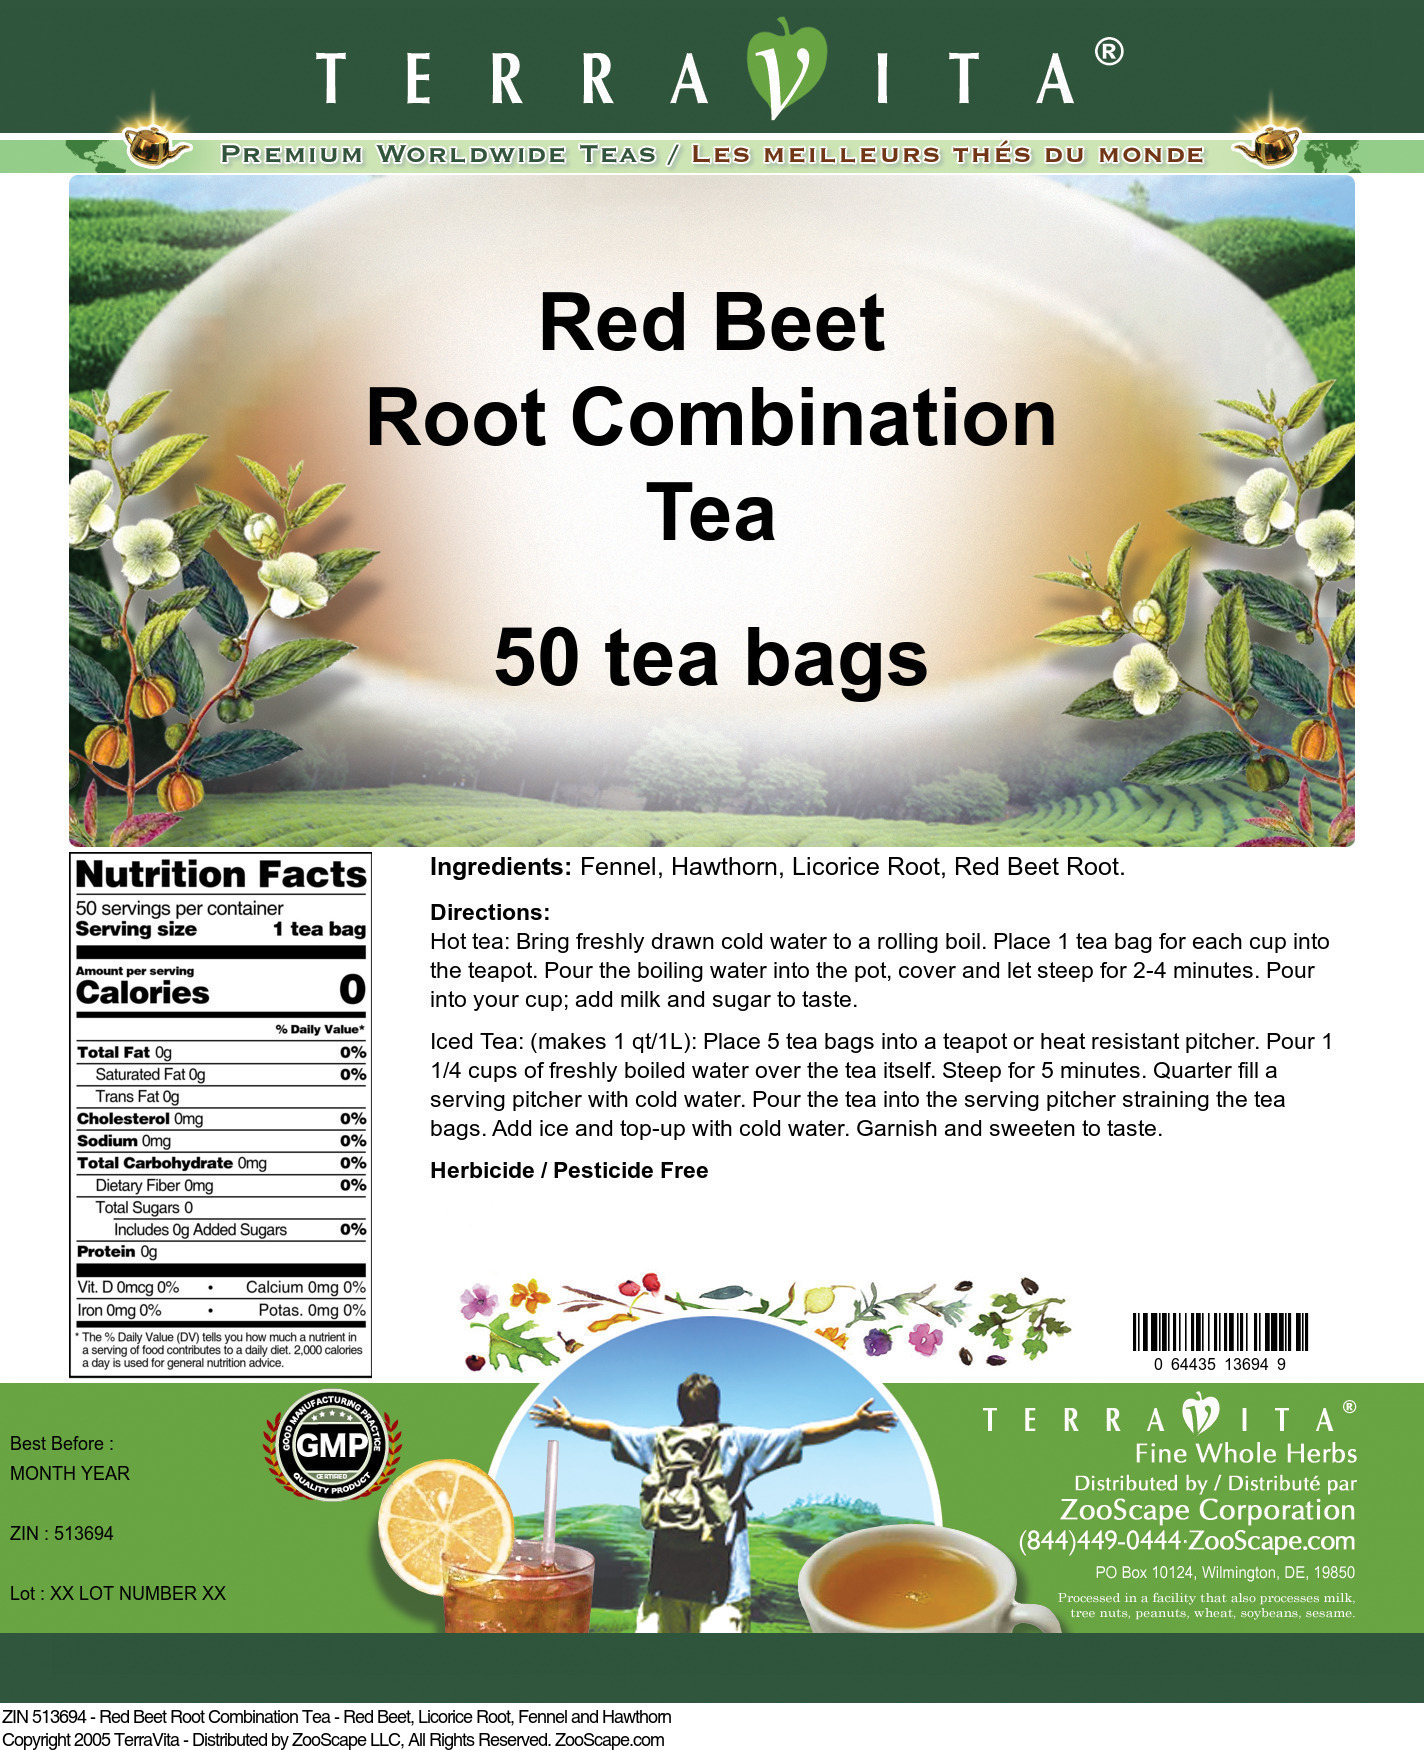 Red Beet Root Combination Tea - Red Beet, Licorice Root, Fennel and Hawthorn